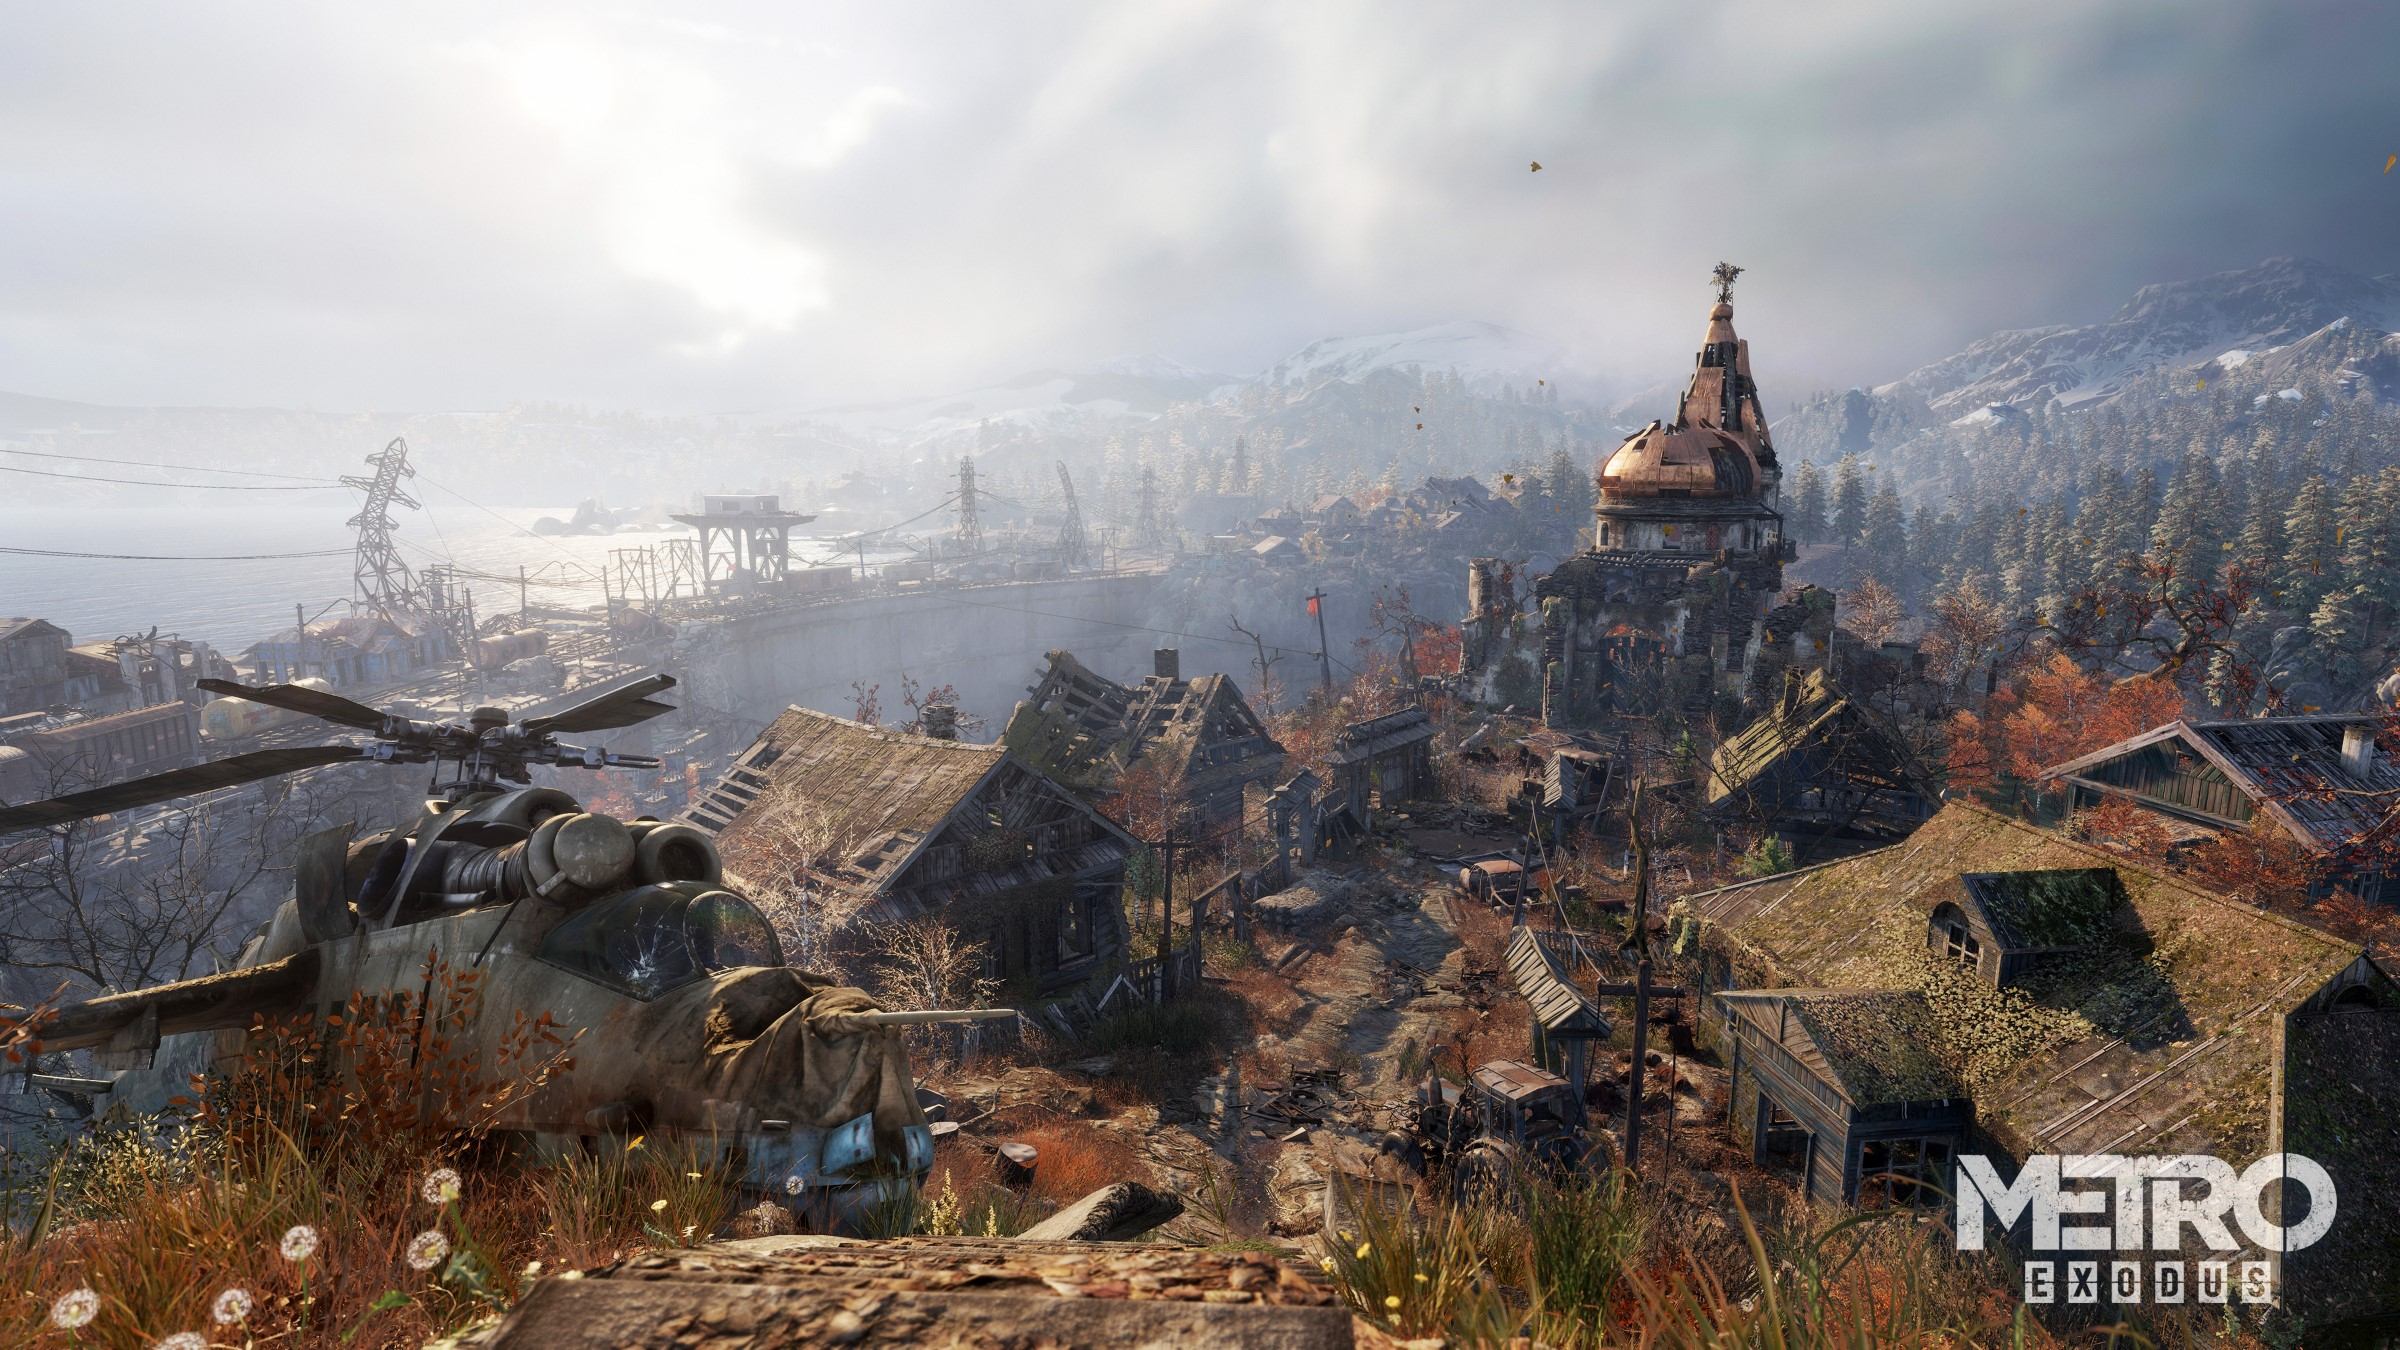 Metro-Exodus-4K-Announce-Screenshot-5-WATERMARK